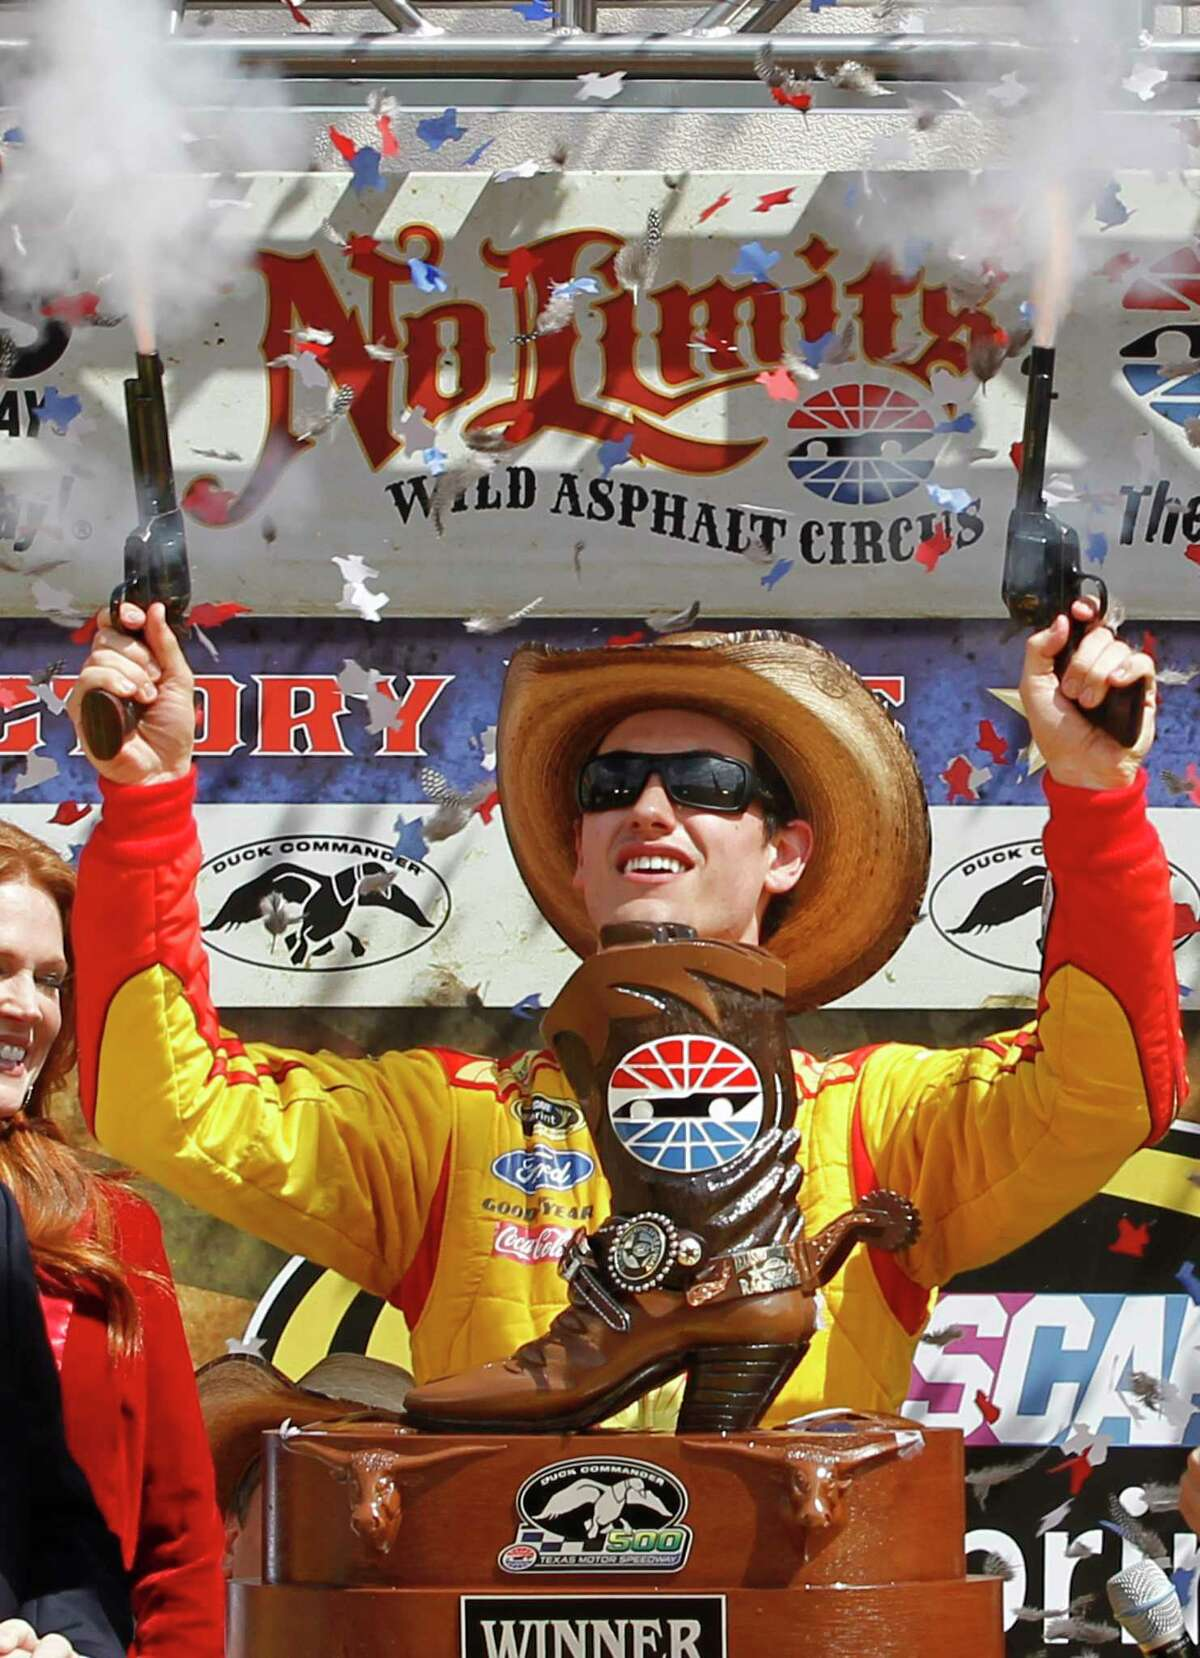 In this April 7, 2014 file photo, Joey Logano shoots off pistols celebrating winning the NASCAR Sprint Cup race at Texas Motor Speedway in Fort Worth.